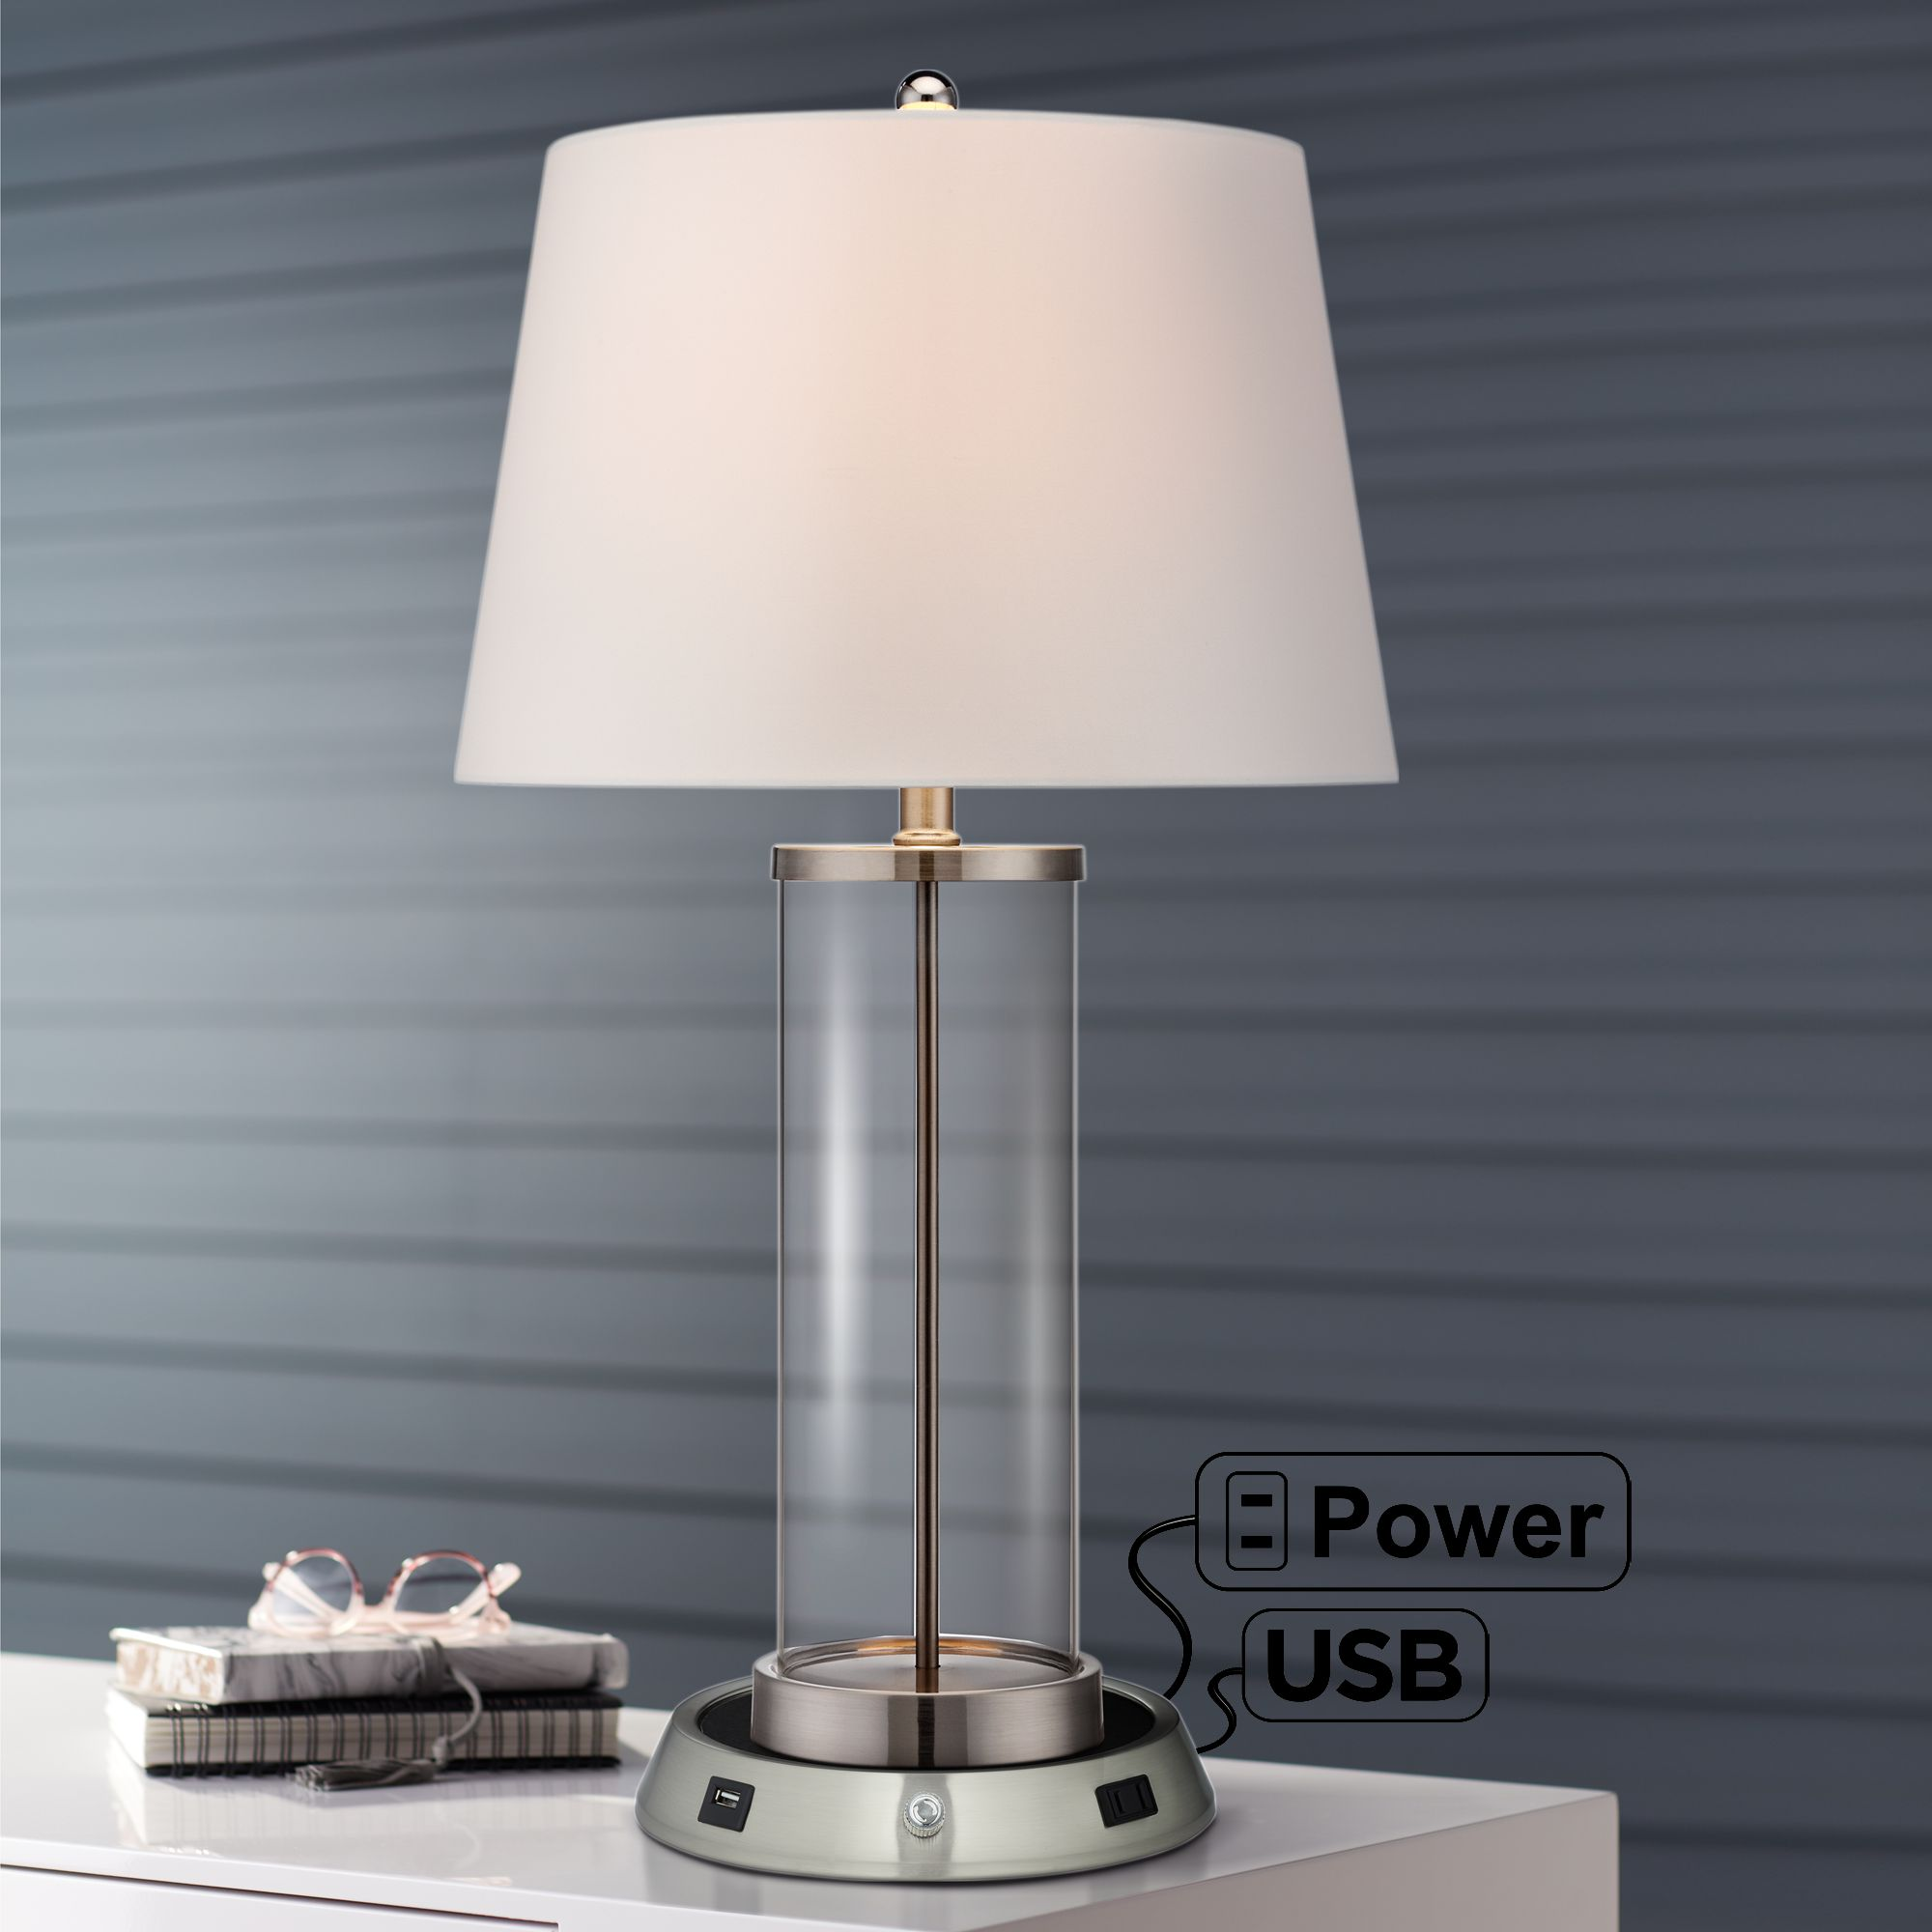 Modern Table Lamp With Usb Outlet Workstation Base Fillable Clear Glass Bedroom Ebay